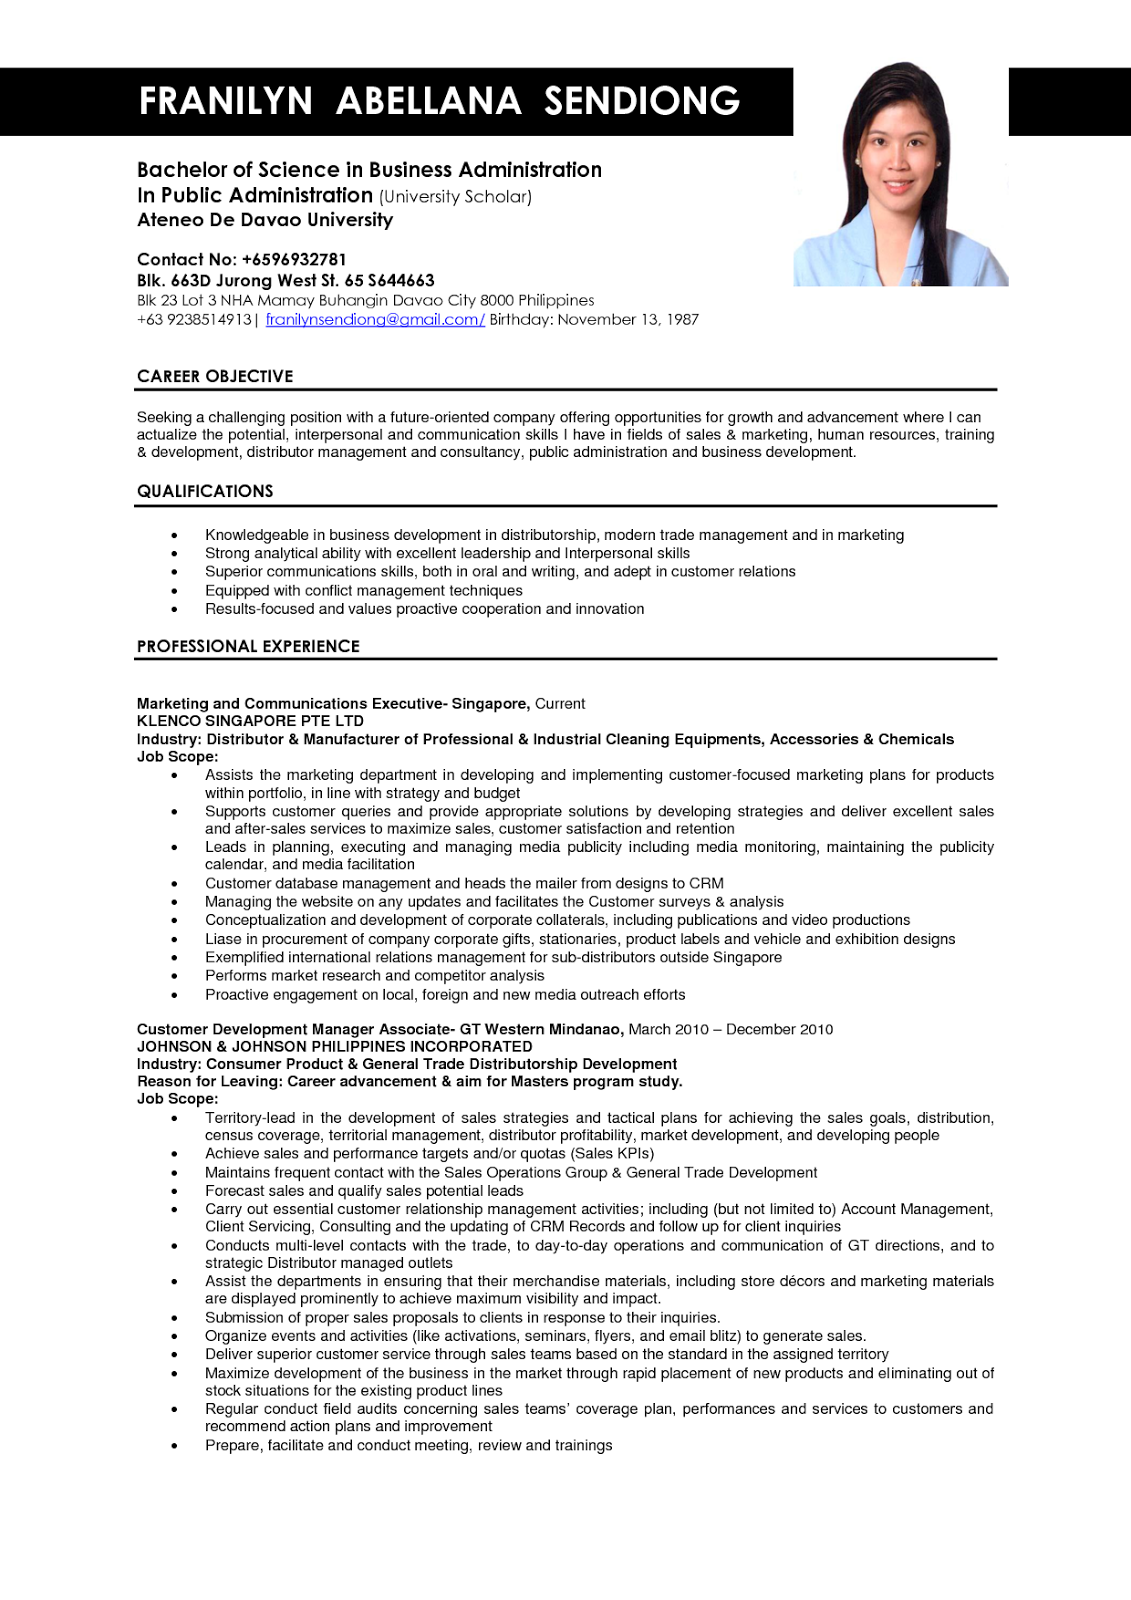 business owner resume samples cover letter resume examples business owner resume samples sample business owner resume sample resume resume template business resume